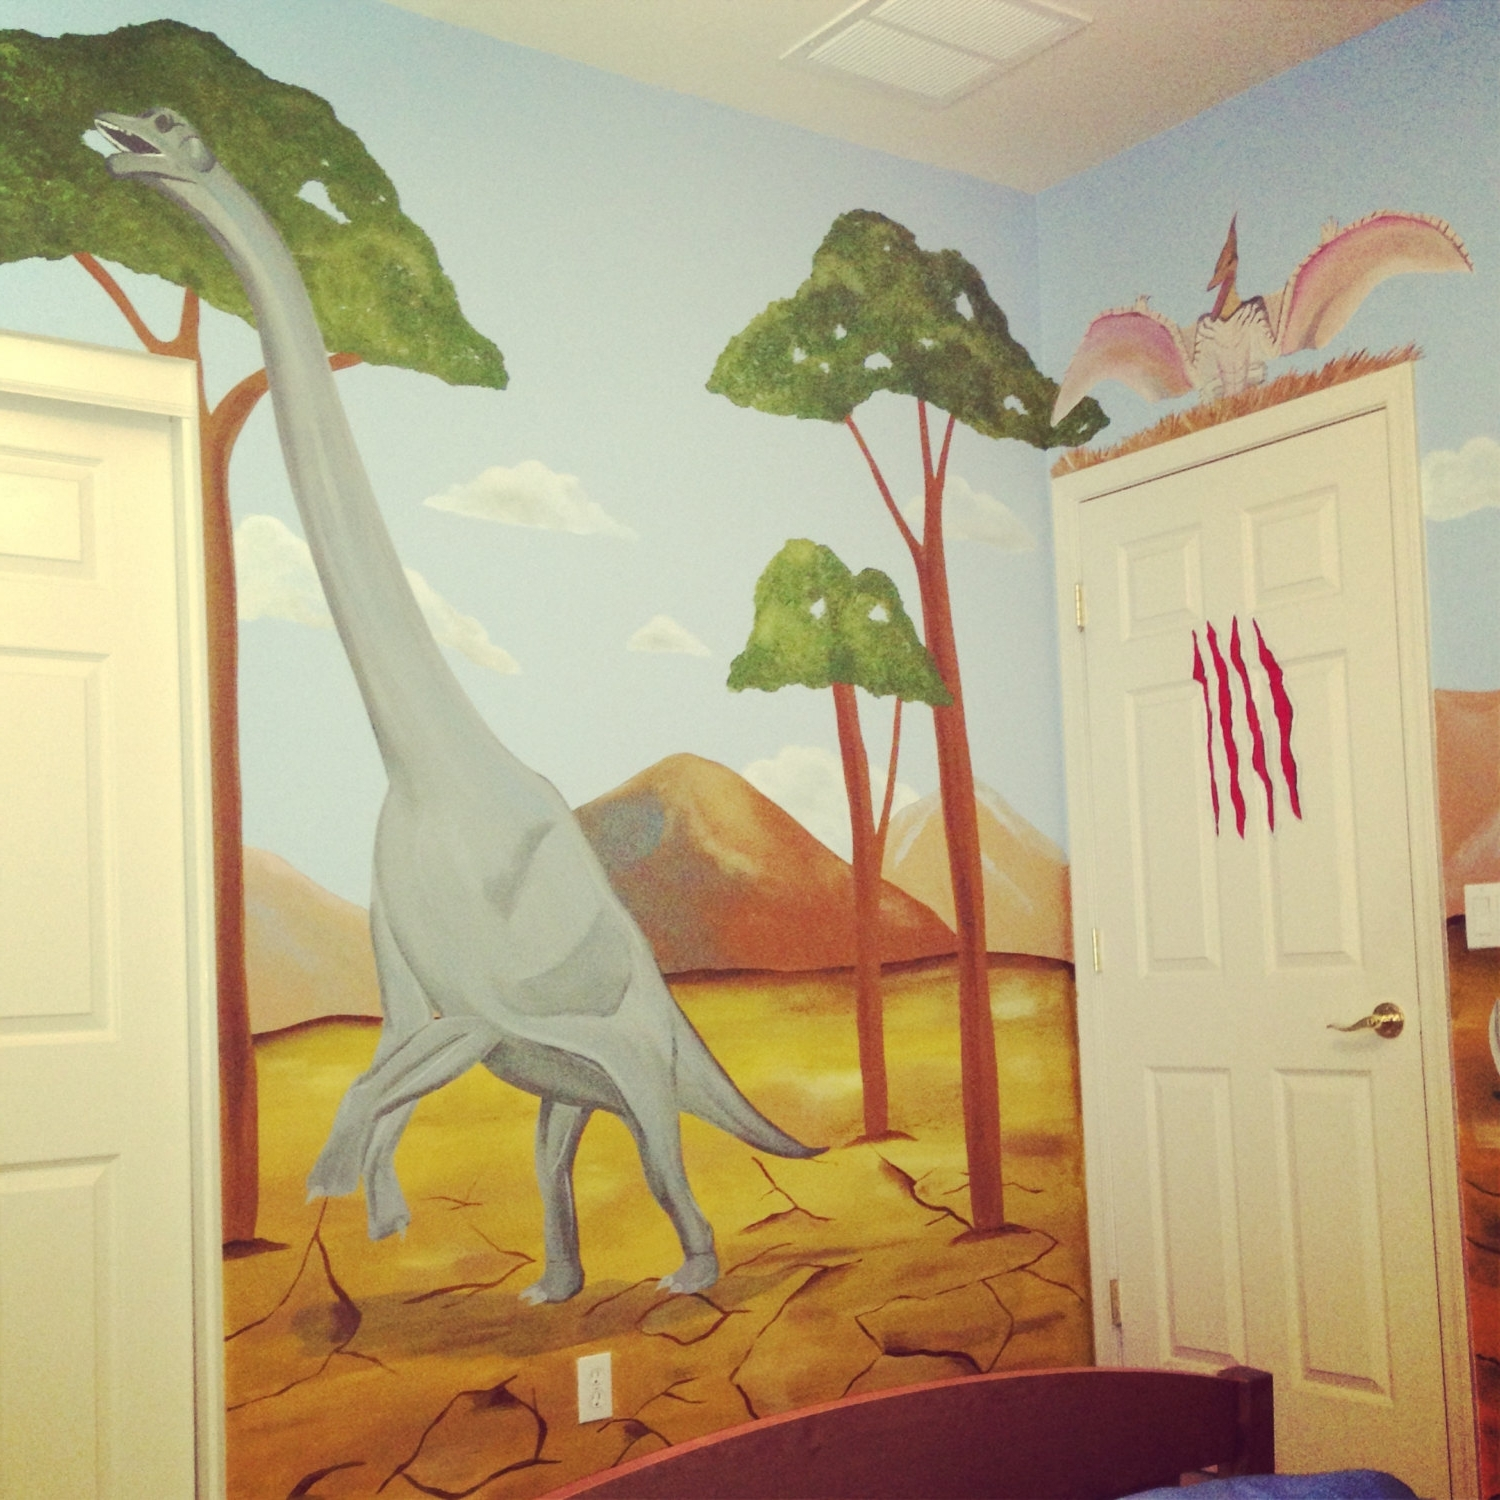 3D Dinosaur Wall Decals Bedroom Stickers Beetling Design Boys For Well Known Beetling Brachiosaurus Dinosaur 3D Wall Art (Gallery 9 of 10)